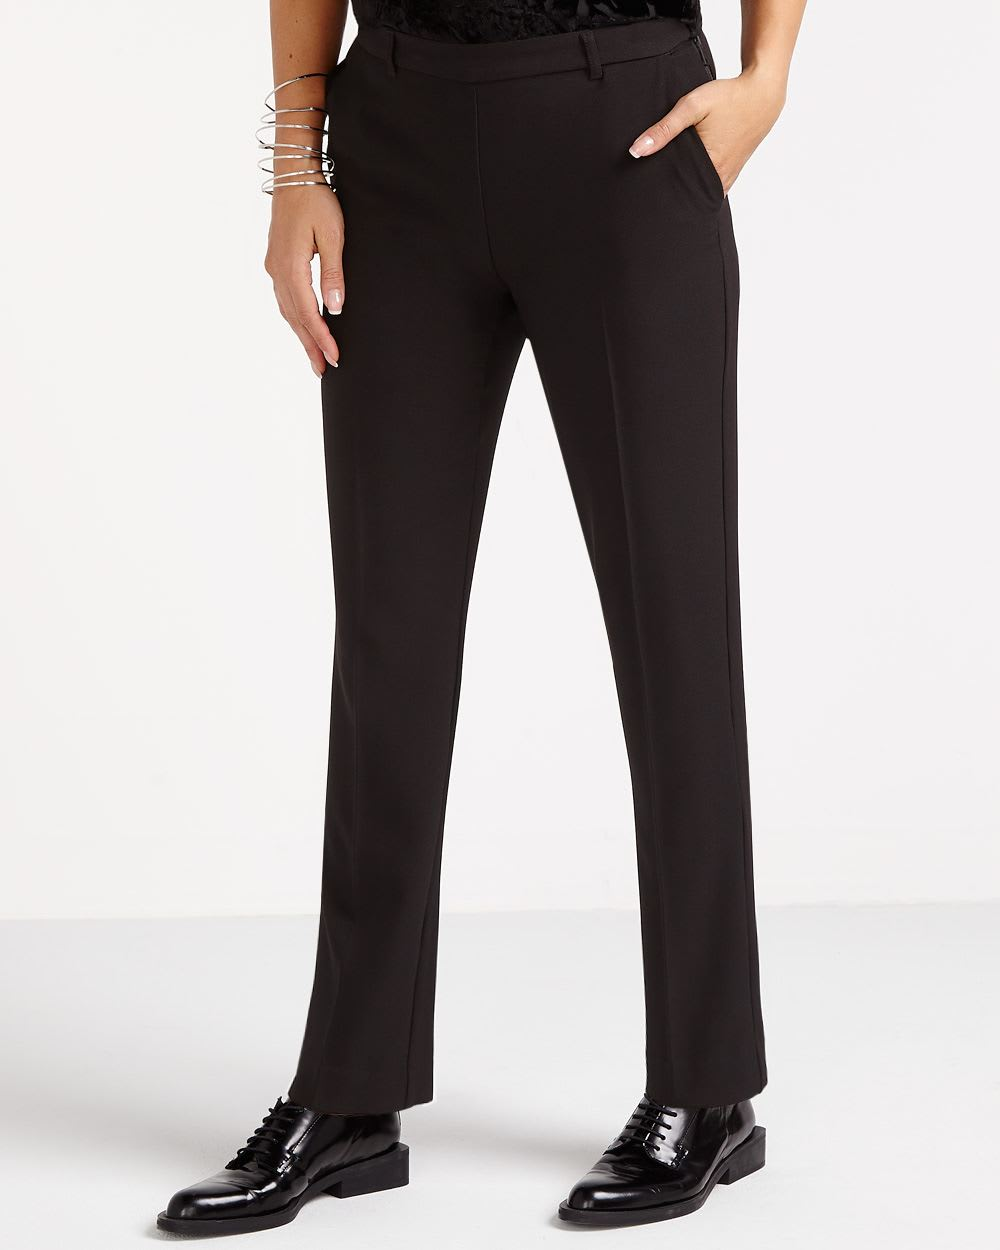 Shop slim fit, skinny & straight leg pants for men at Banana Republic online. Find the perfect men's trousers today.